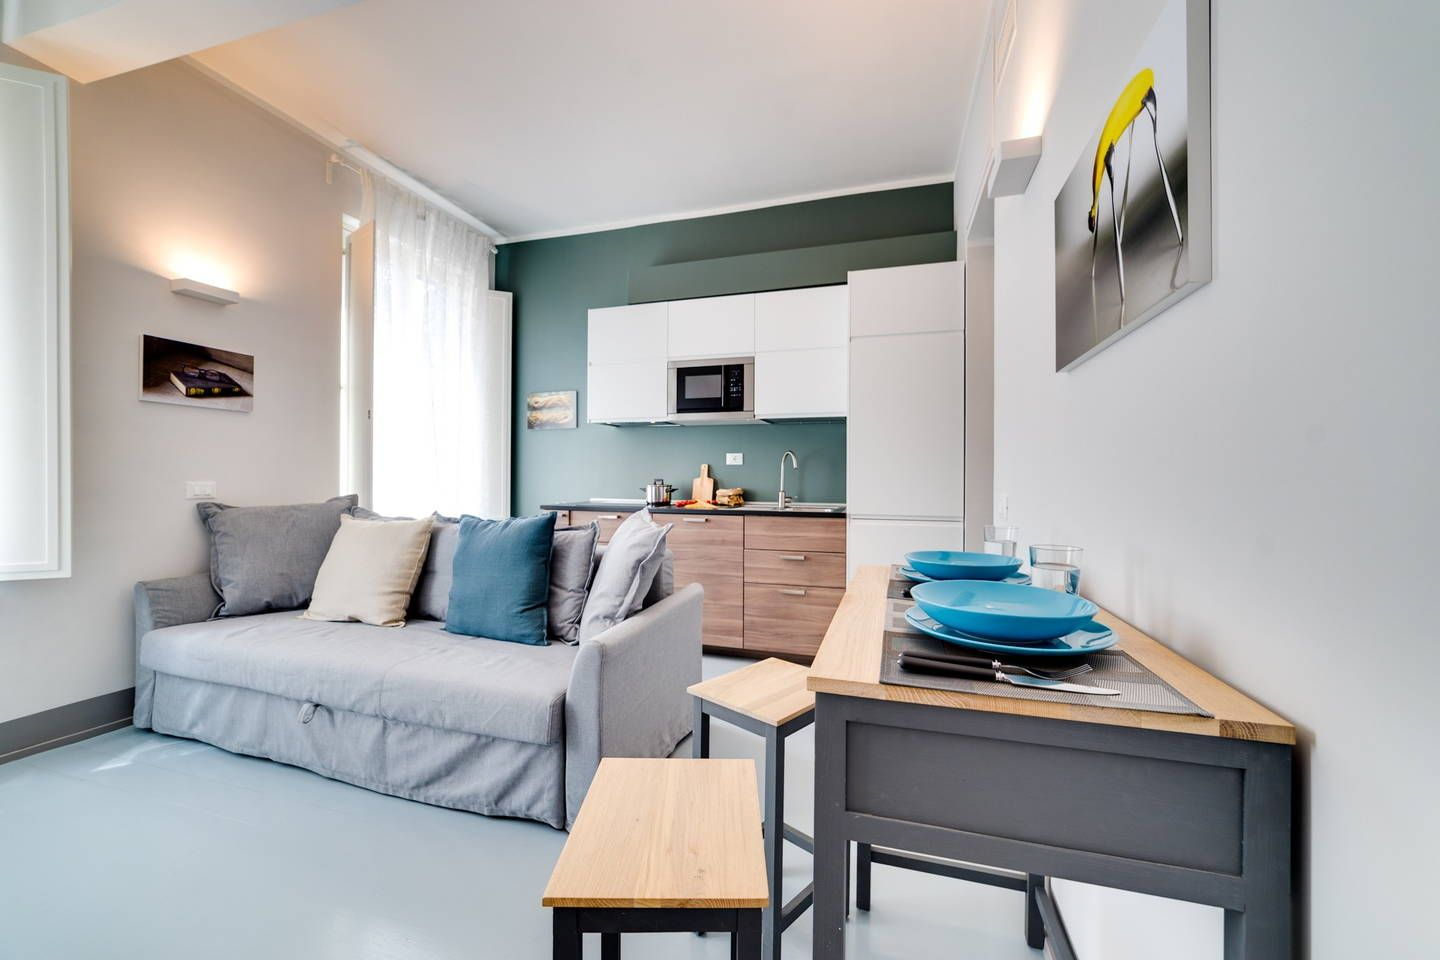 Totally new and fully equipped 1 bedroom flat fitting up